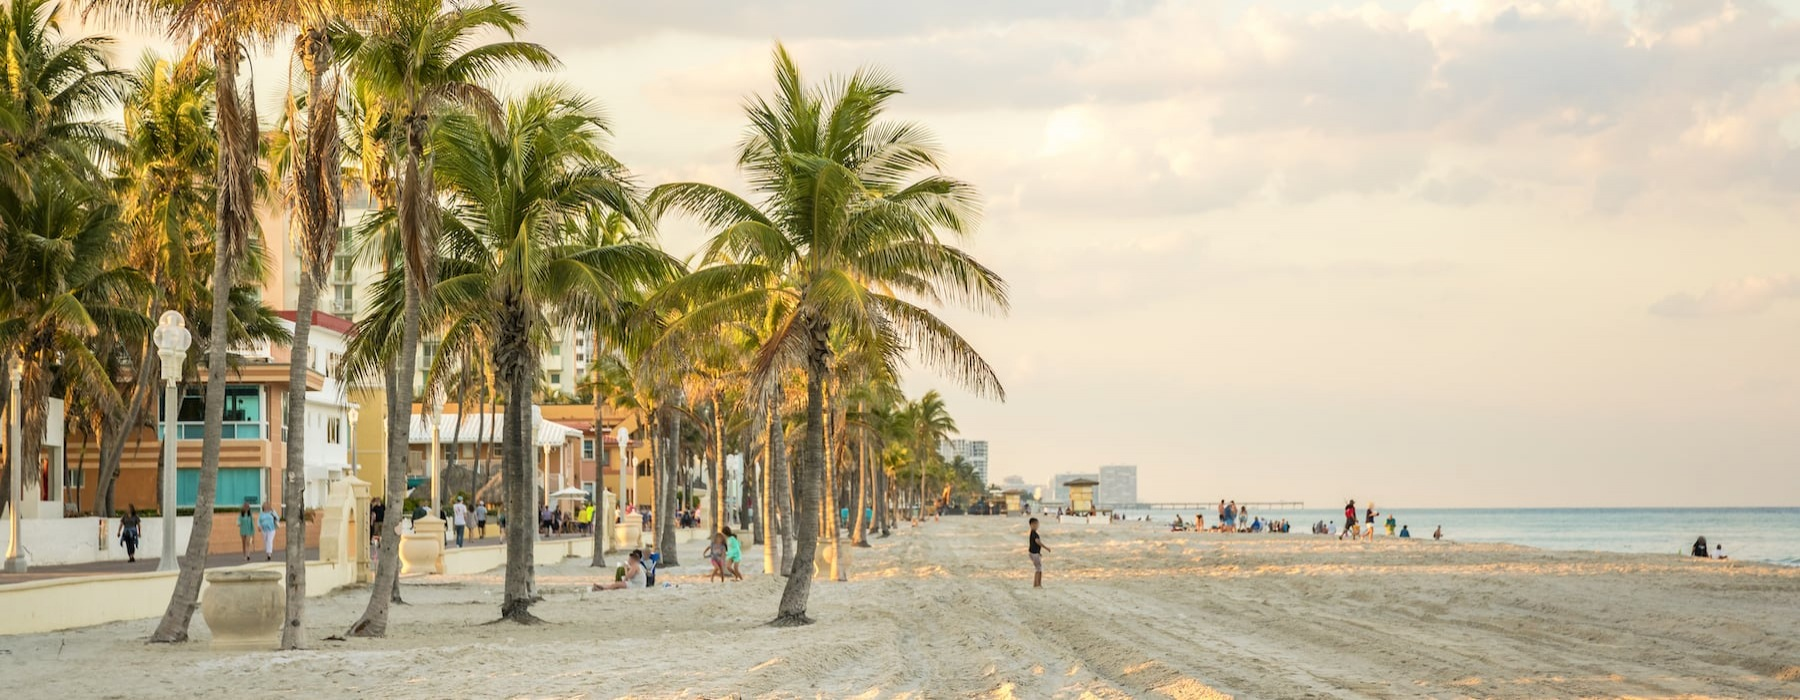 lifestyle image of a beach showing palm trees and sunset shadows